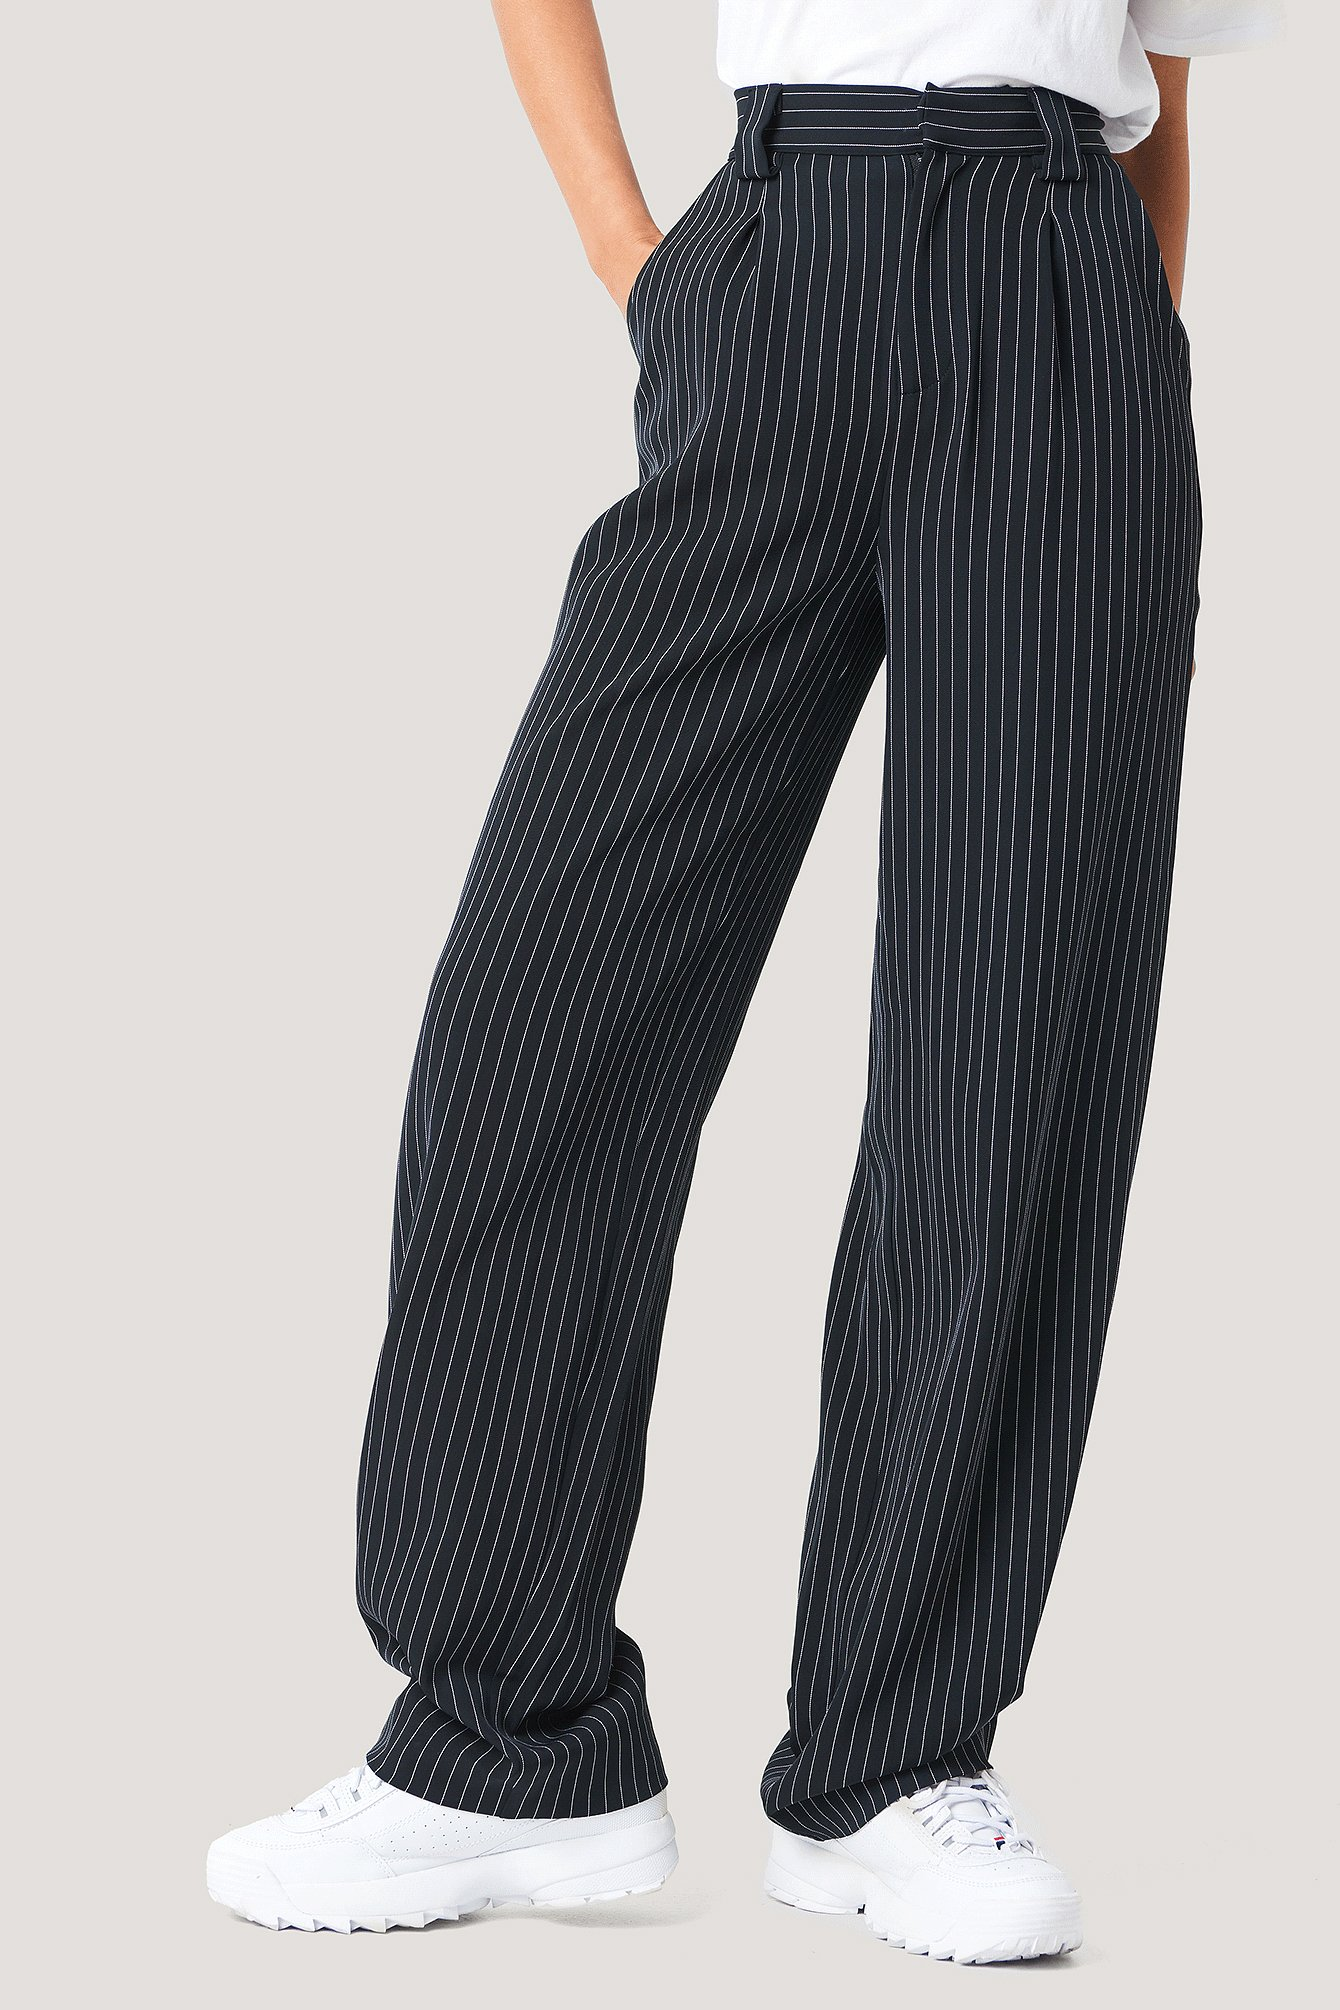 Black/Stripe Flared Striped Pants